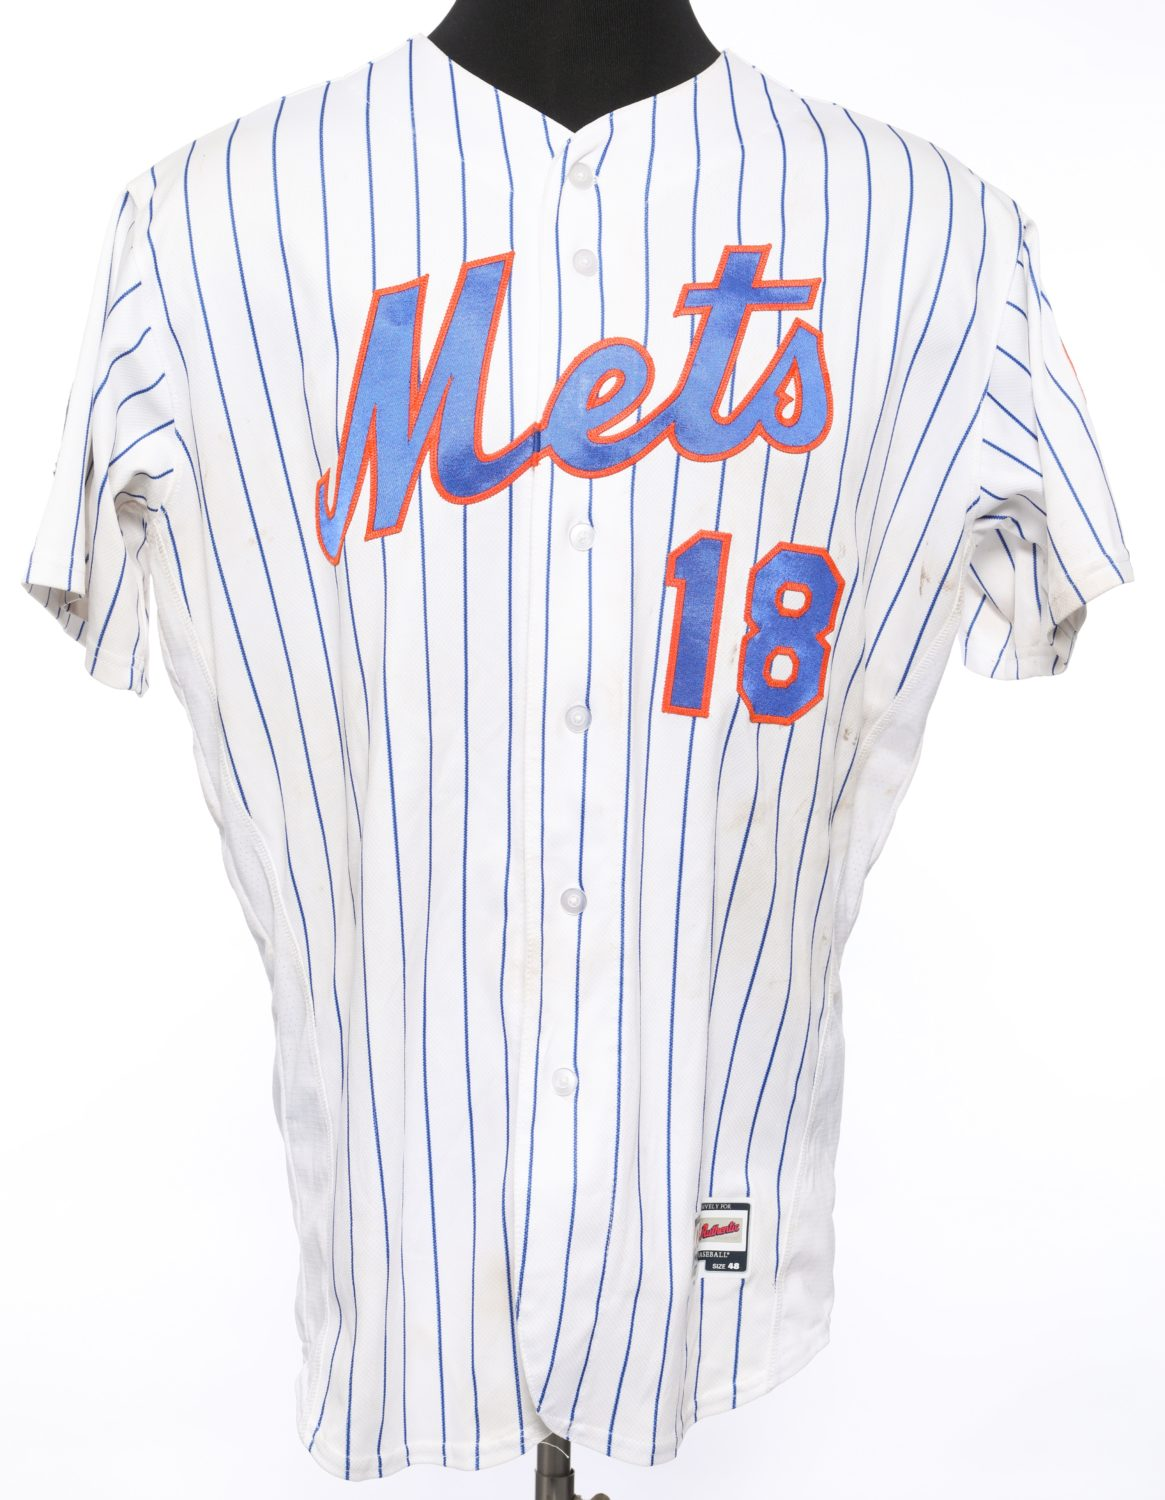 d'Arnaud Jersey from Piazza Retirement Night